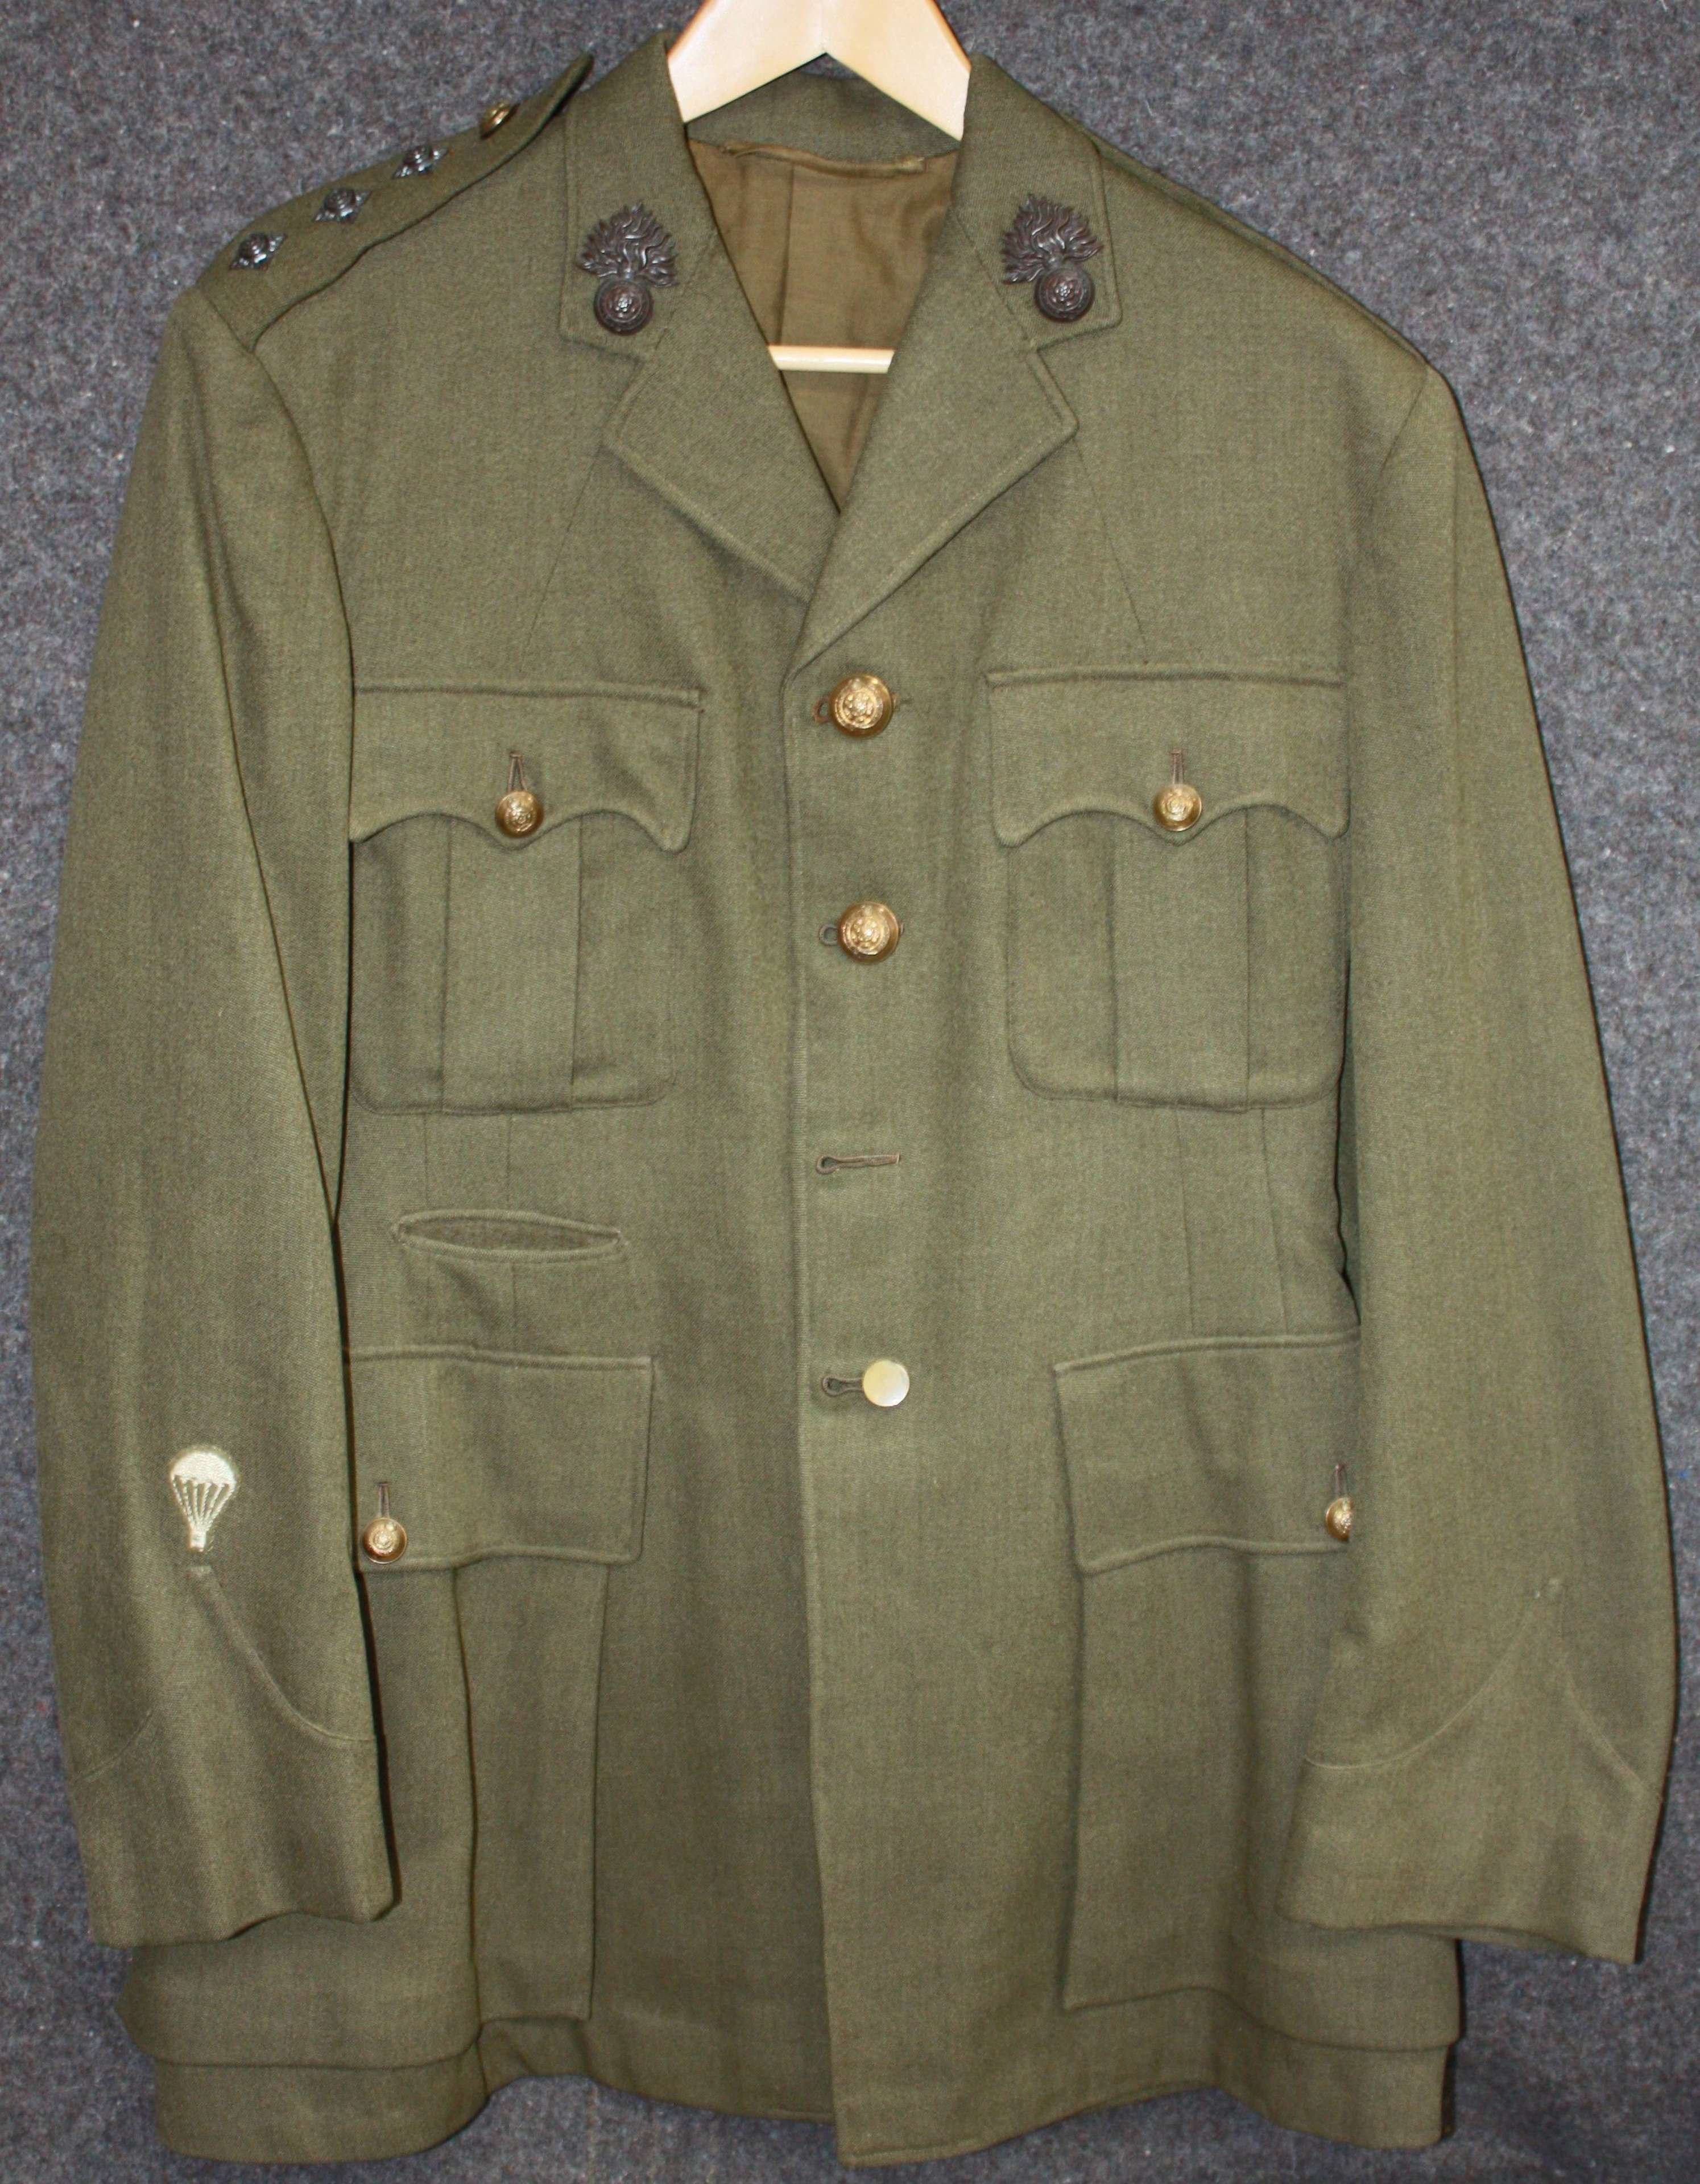 A WWII OFFICERS ROYAL FUSILIERS SERVICE DRESS JACKET PARACHUTE TRAINED